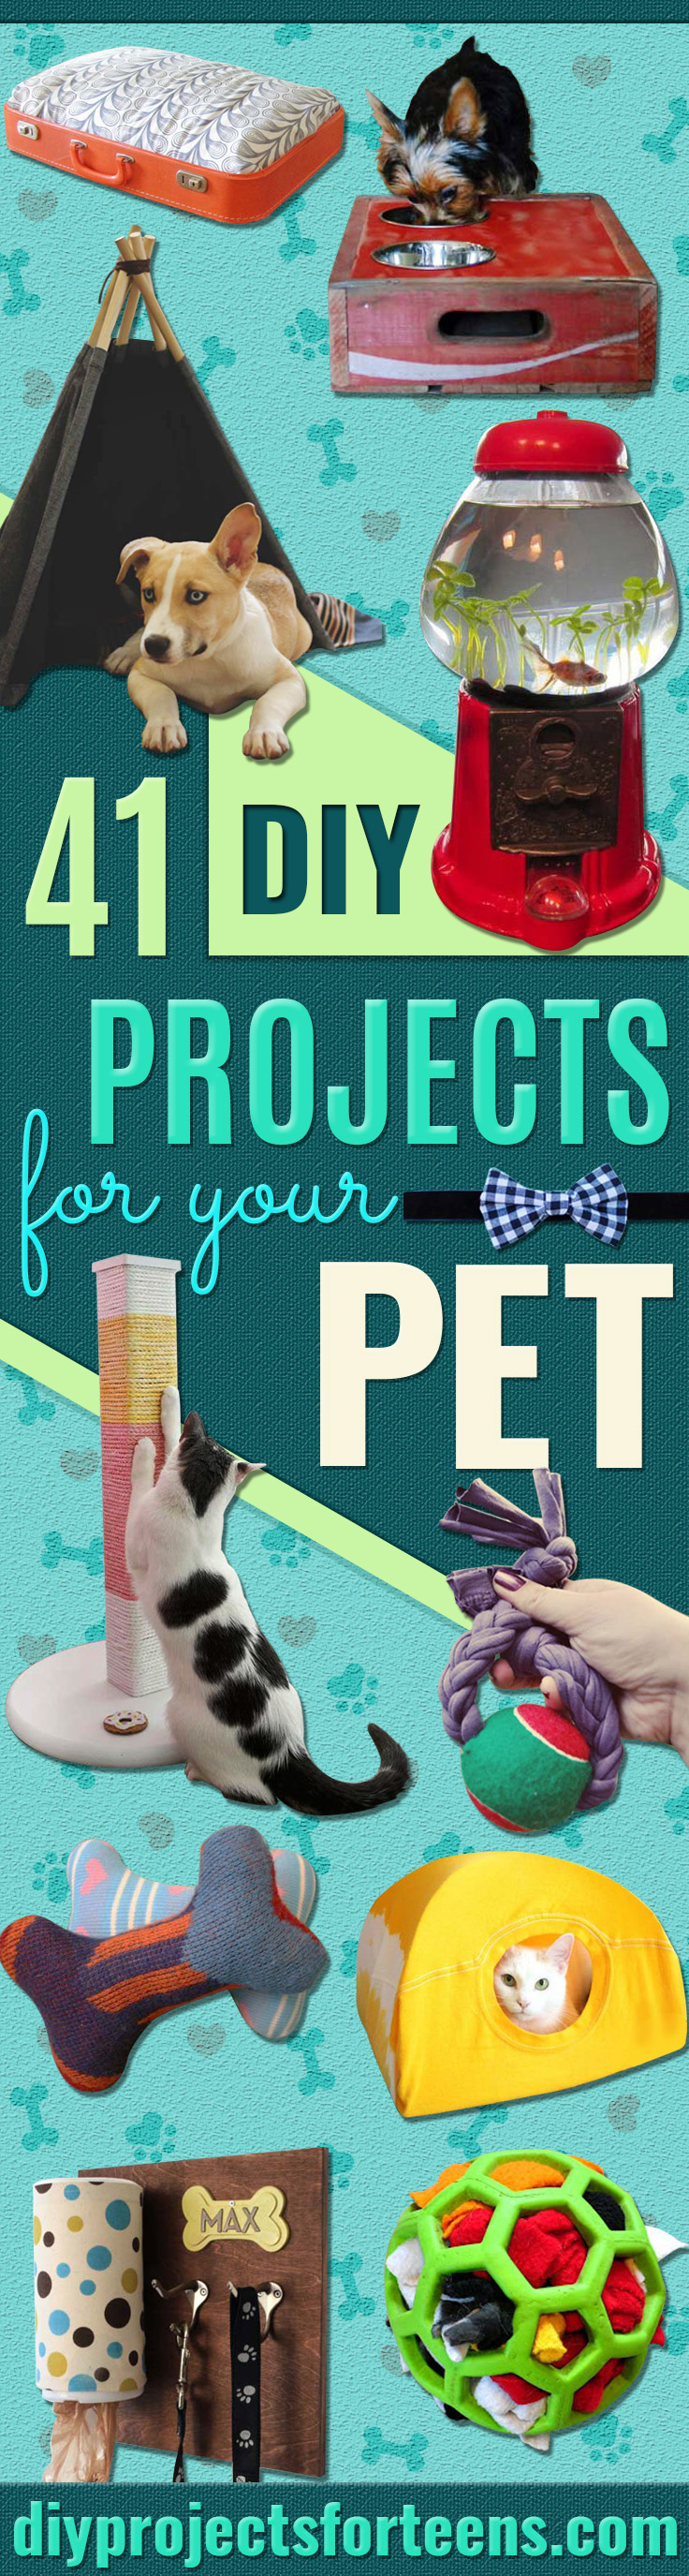 41 Crafty Diy Projects For Your Pet